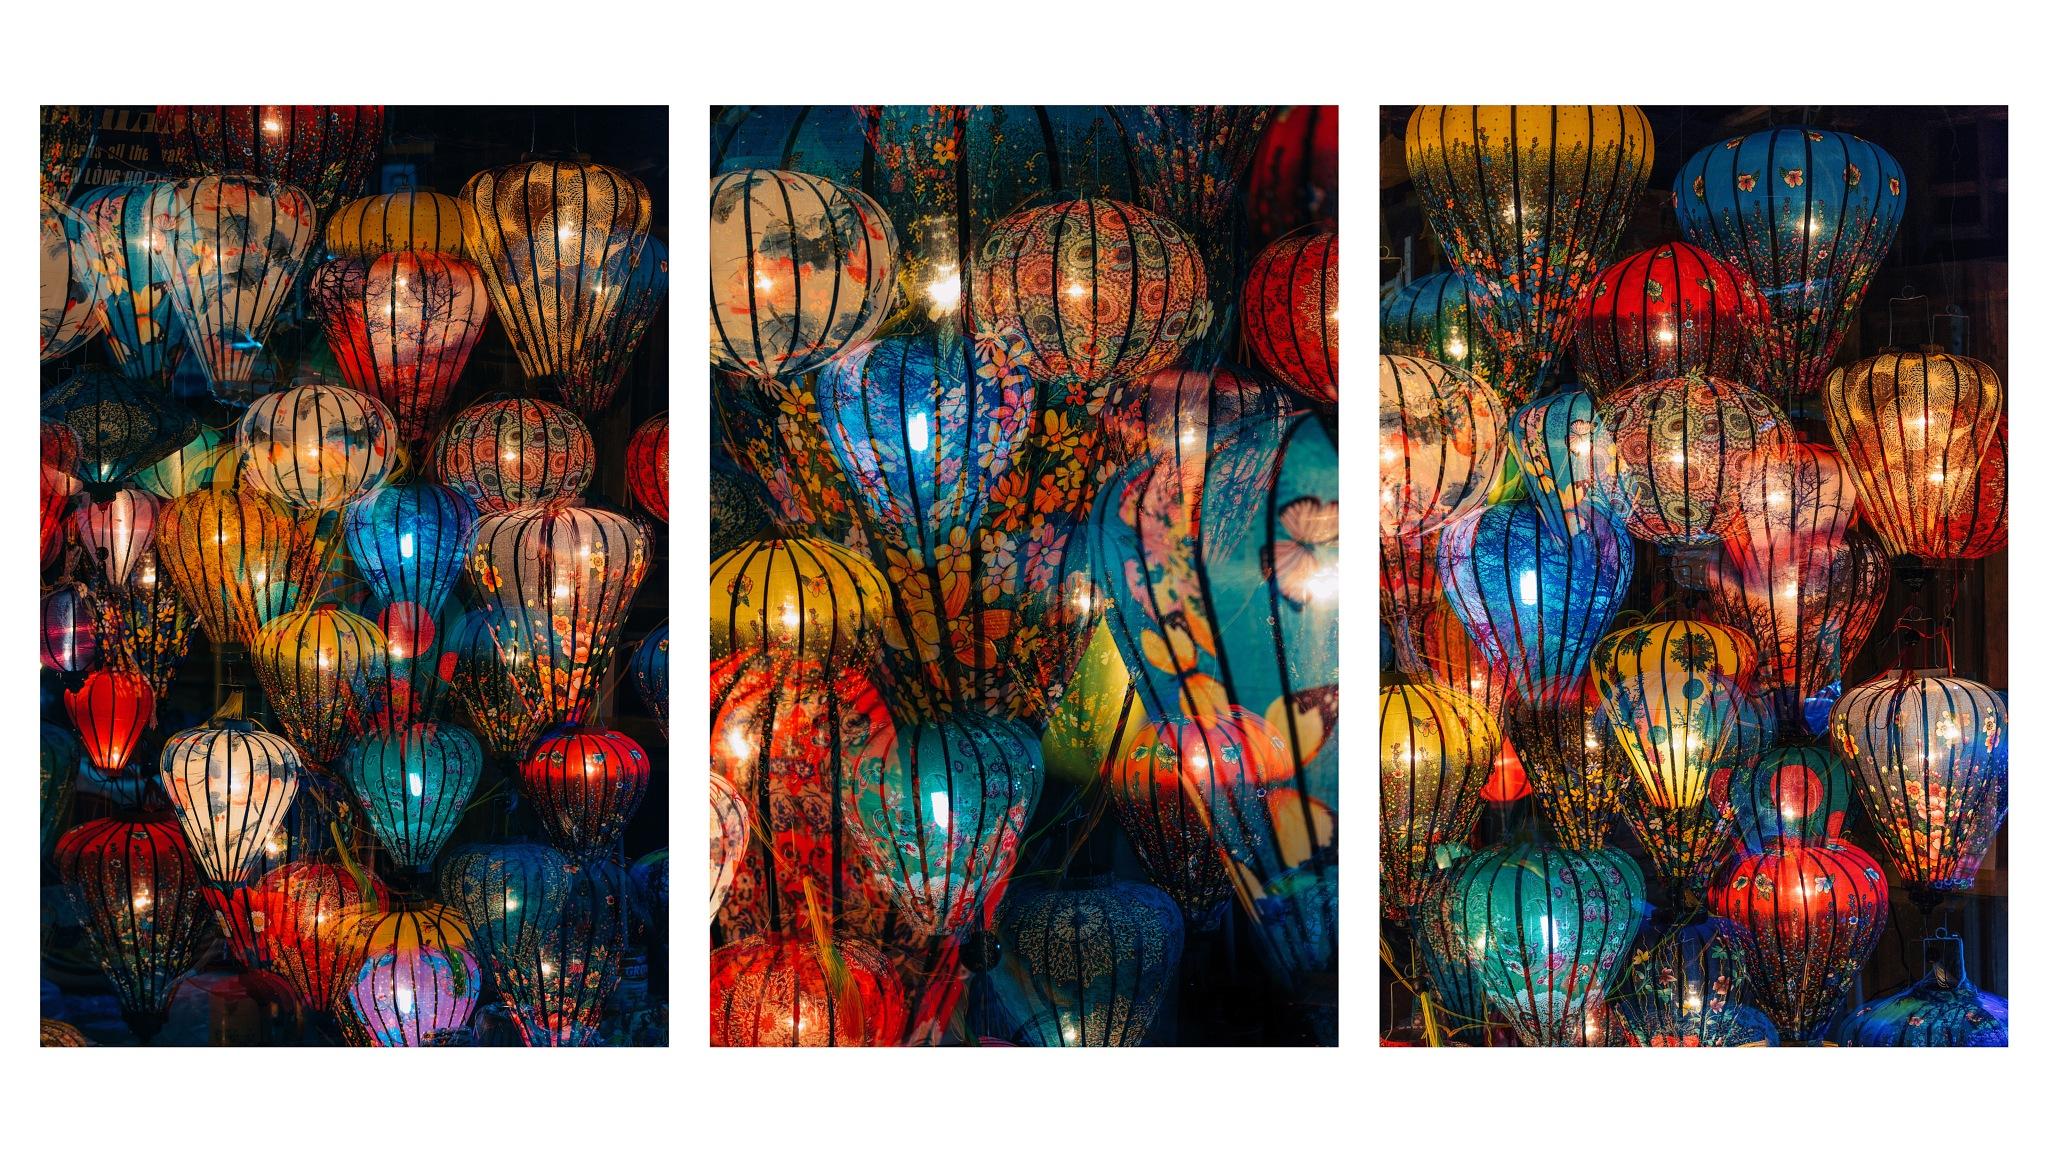 A Sea of Lanterns III (Triptych) by Peter Stewart